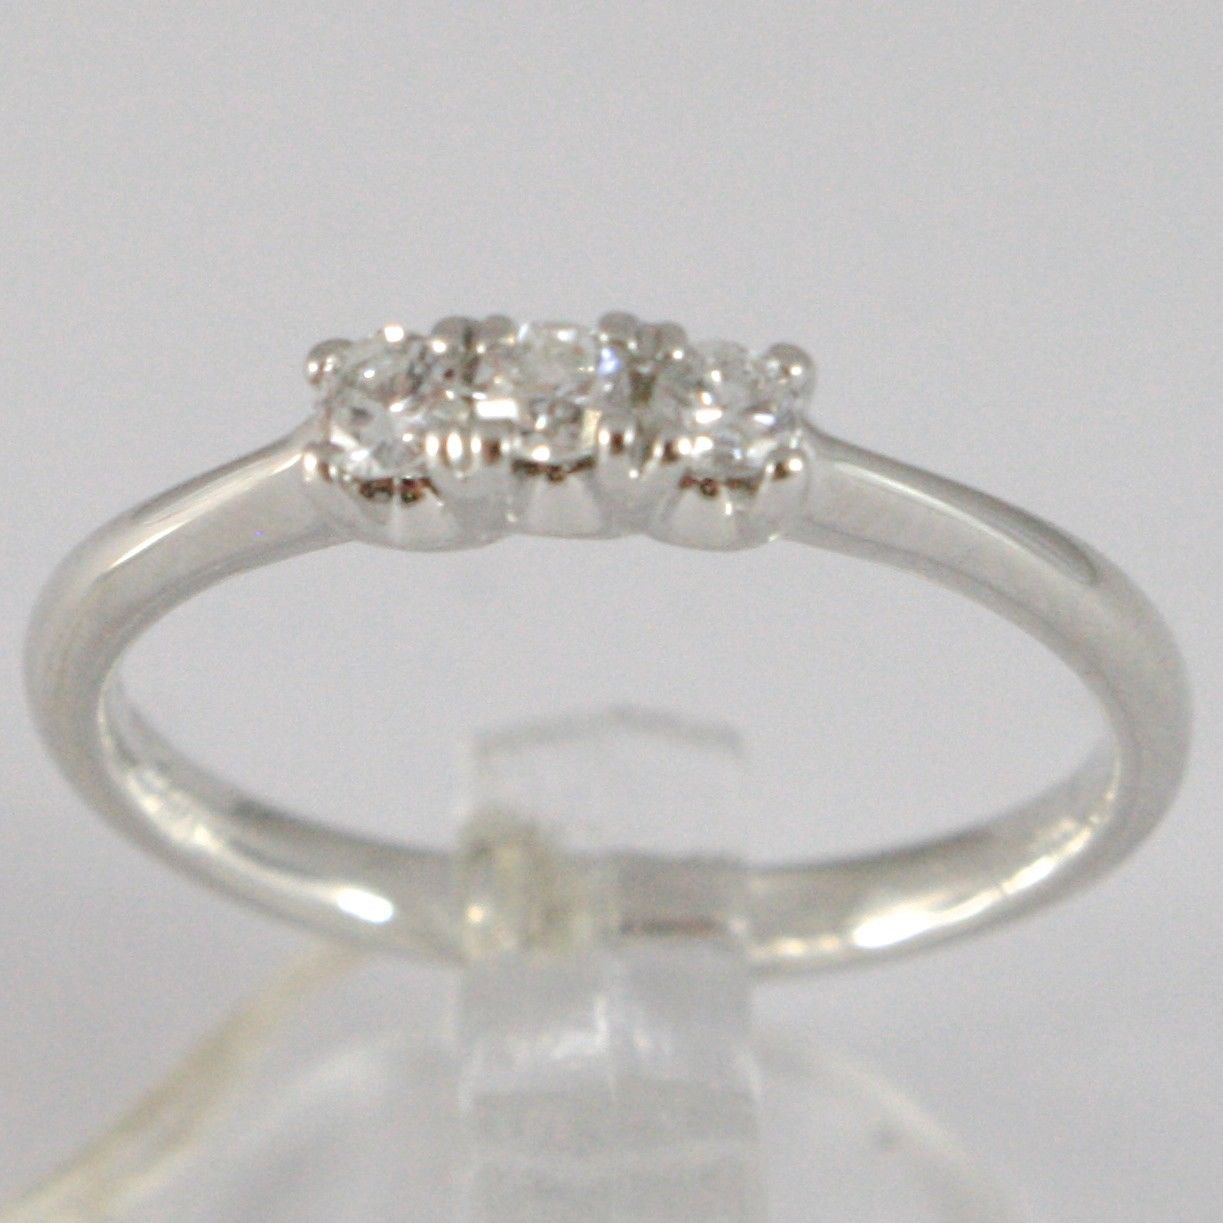 ANILLO DE ORO BLANCO 750 18 CT,TRILOGY 3 DIAMANTES QUILATES TOTAL 0.16,VÁSTAGO